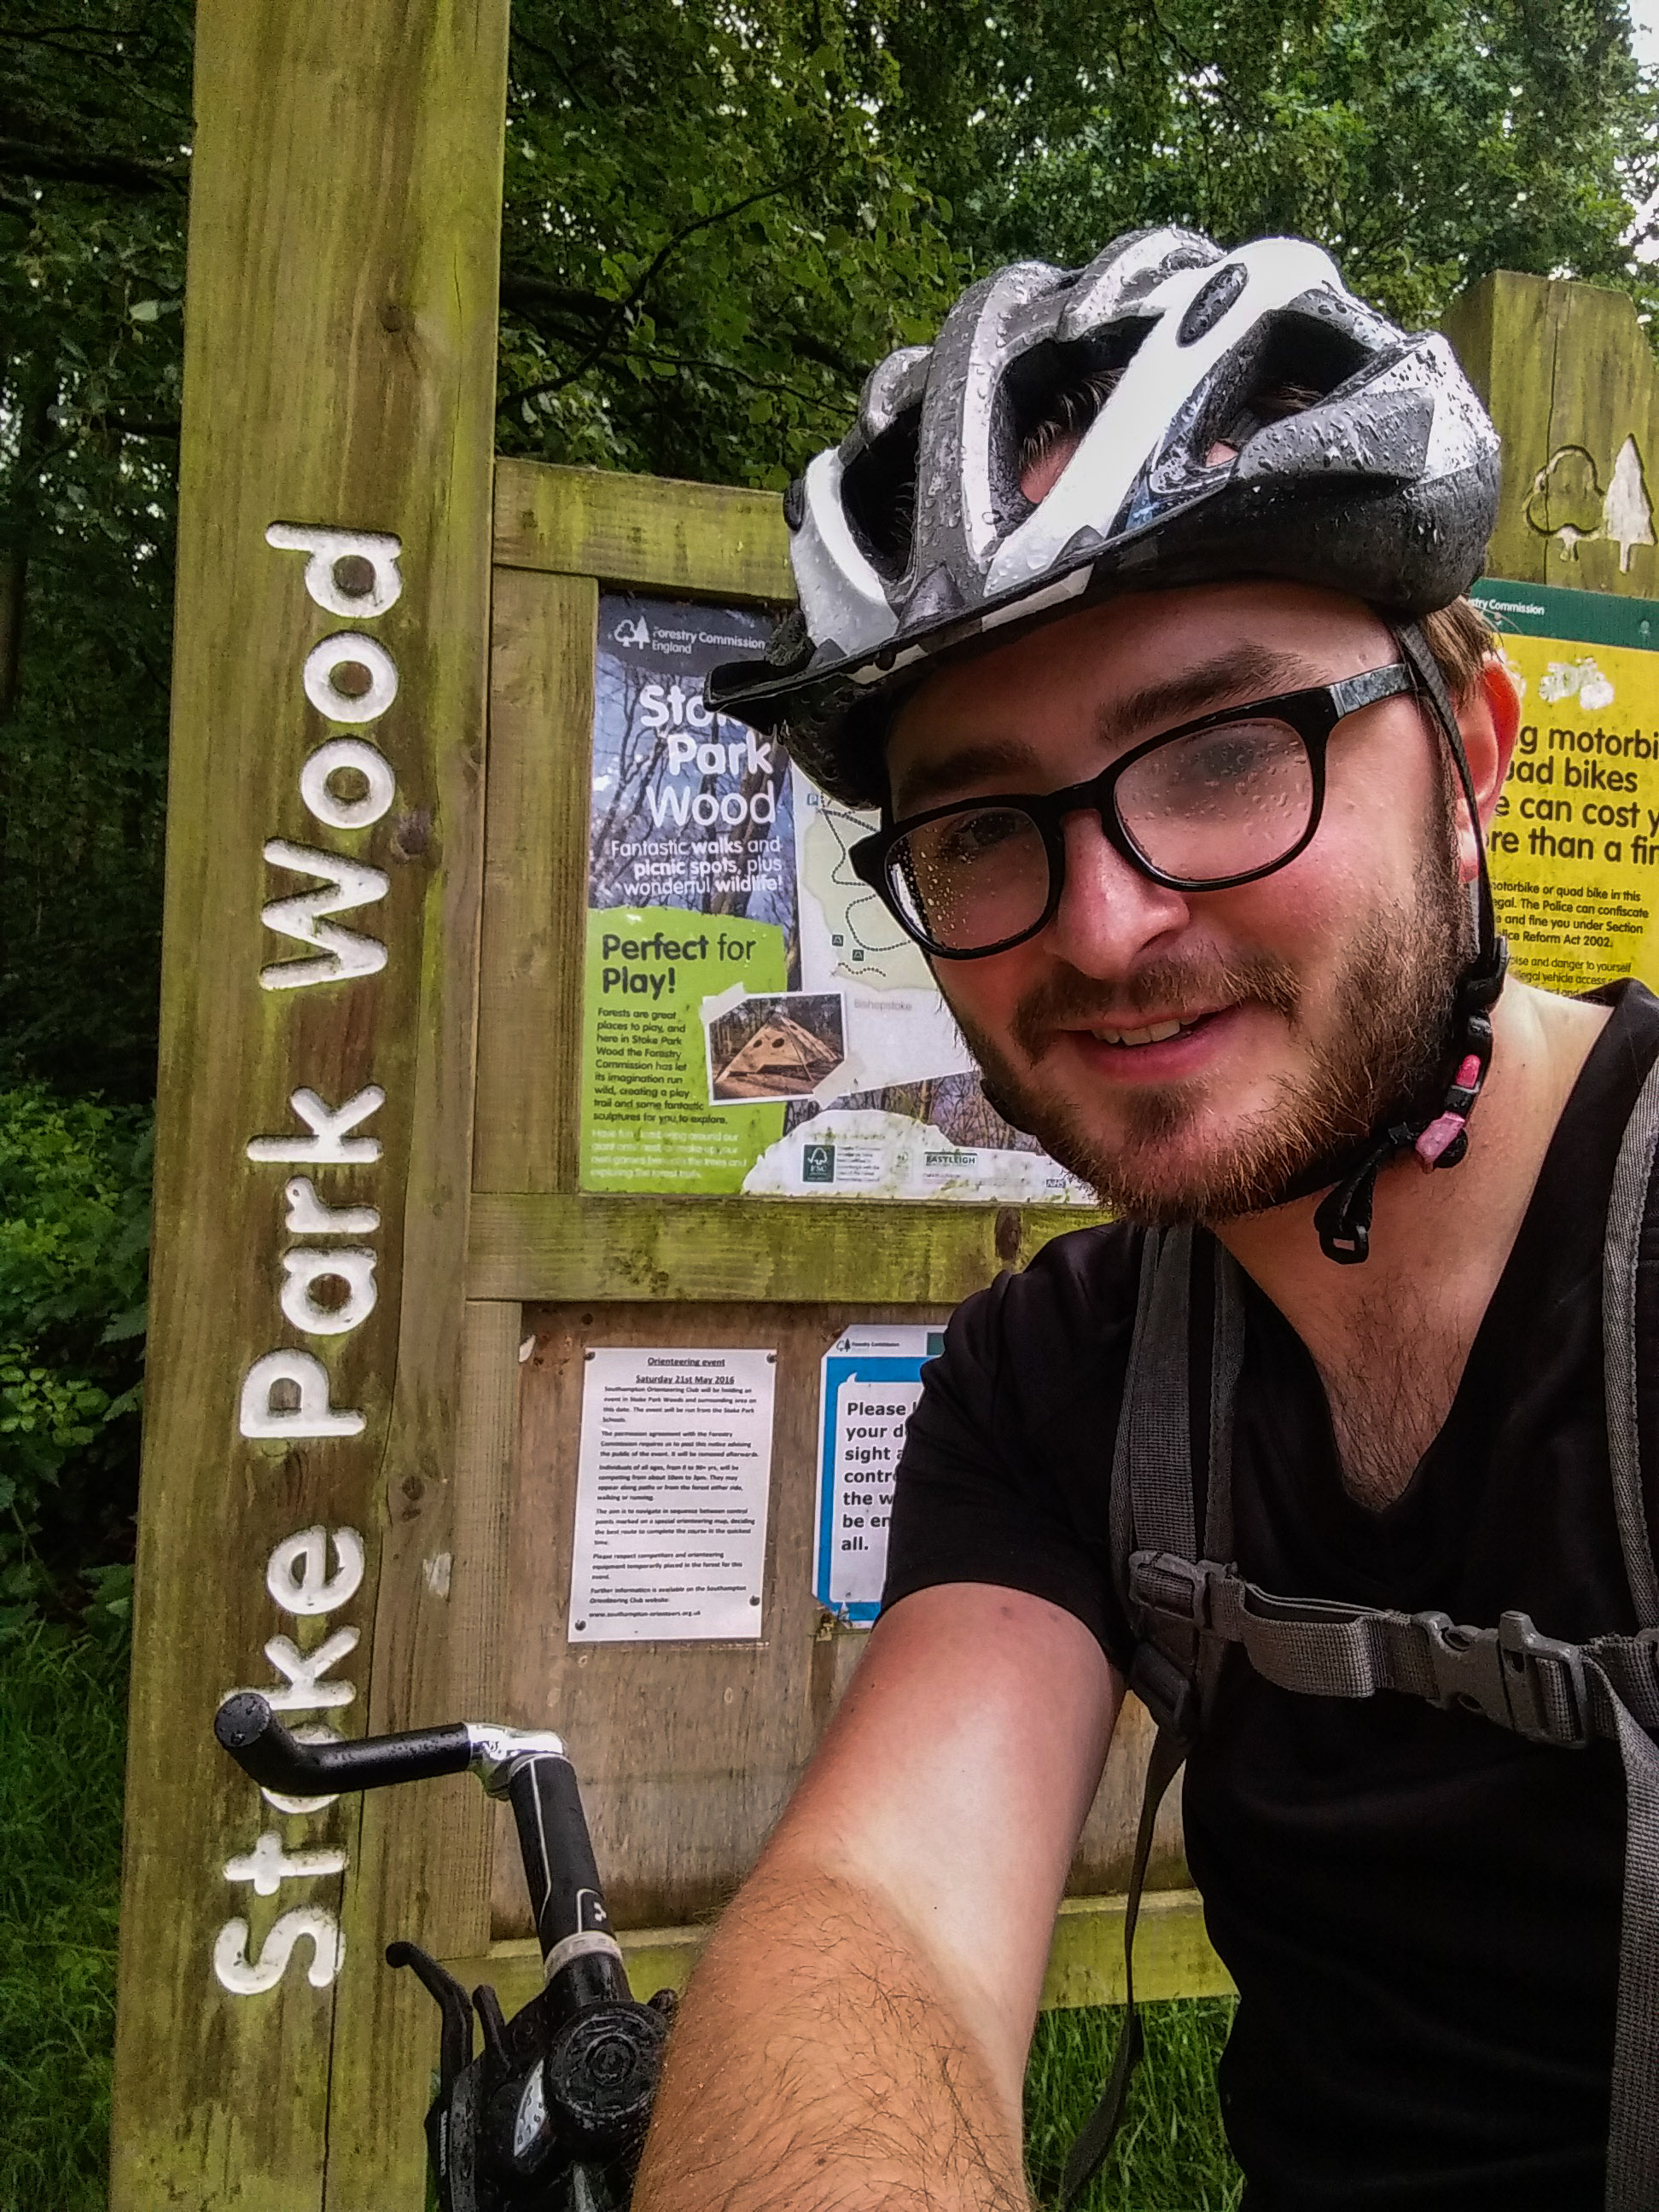 Standing by the Stoke Park Wood sign.